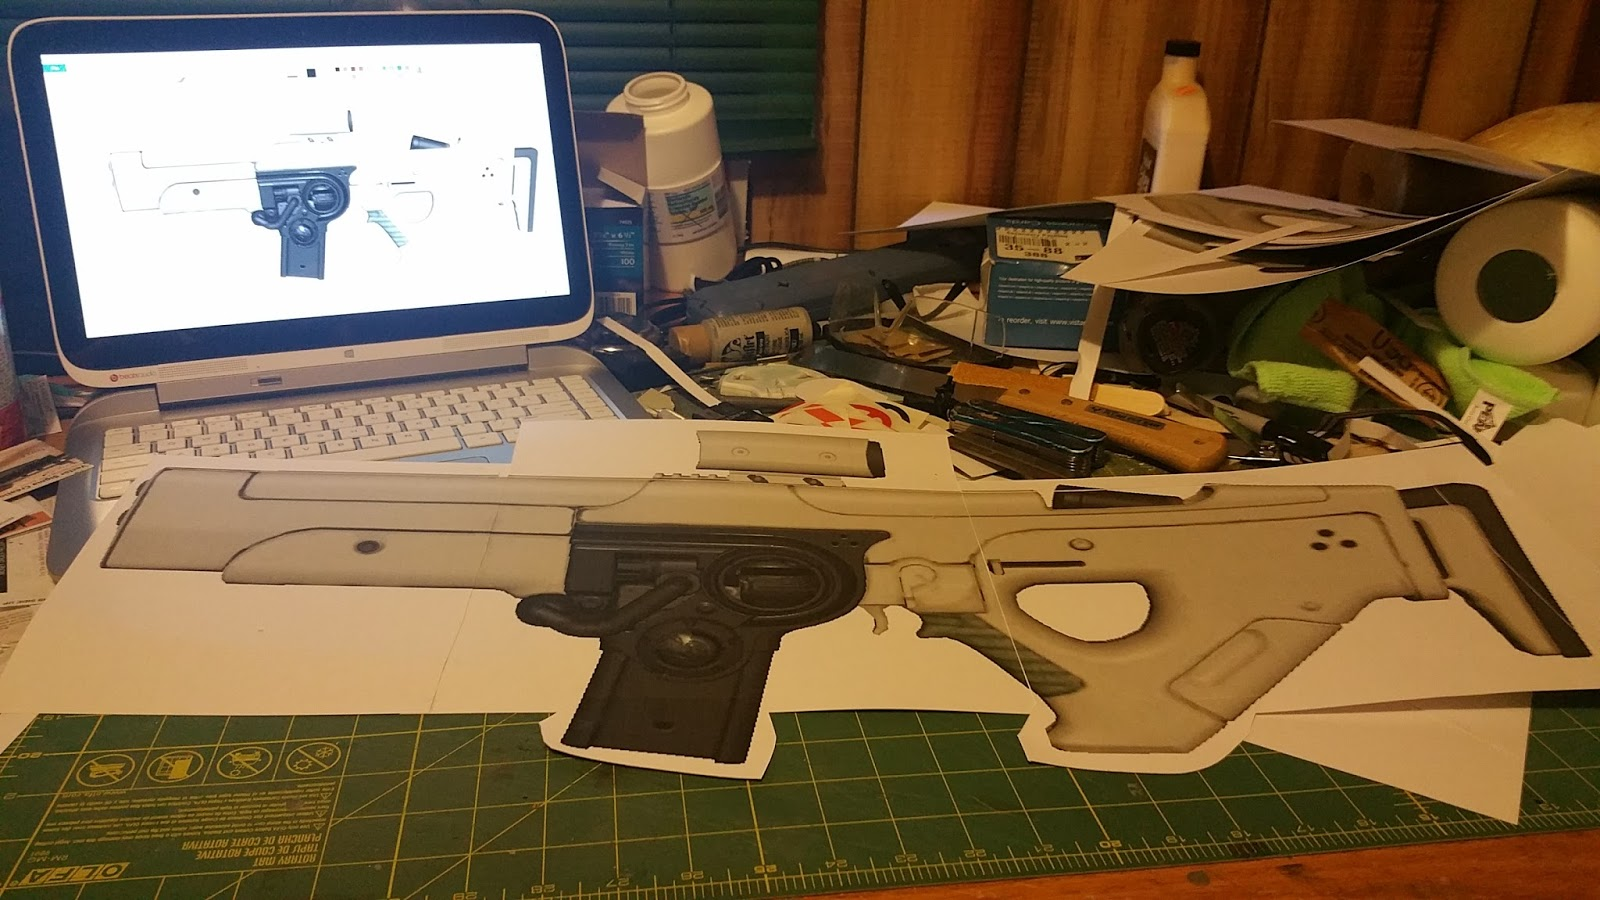 Weaselhammer props destiny hung jury scout rifle build i used 12 inch sintra reclaimed from old signage thrown out from a remodel at work i cut out the basic frame with the intention of building it in layers malvernweather Choice Image